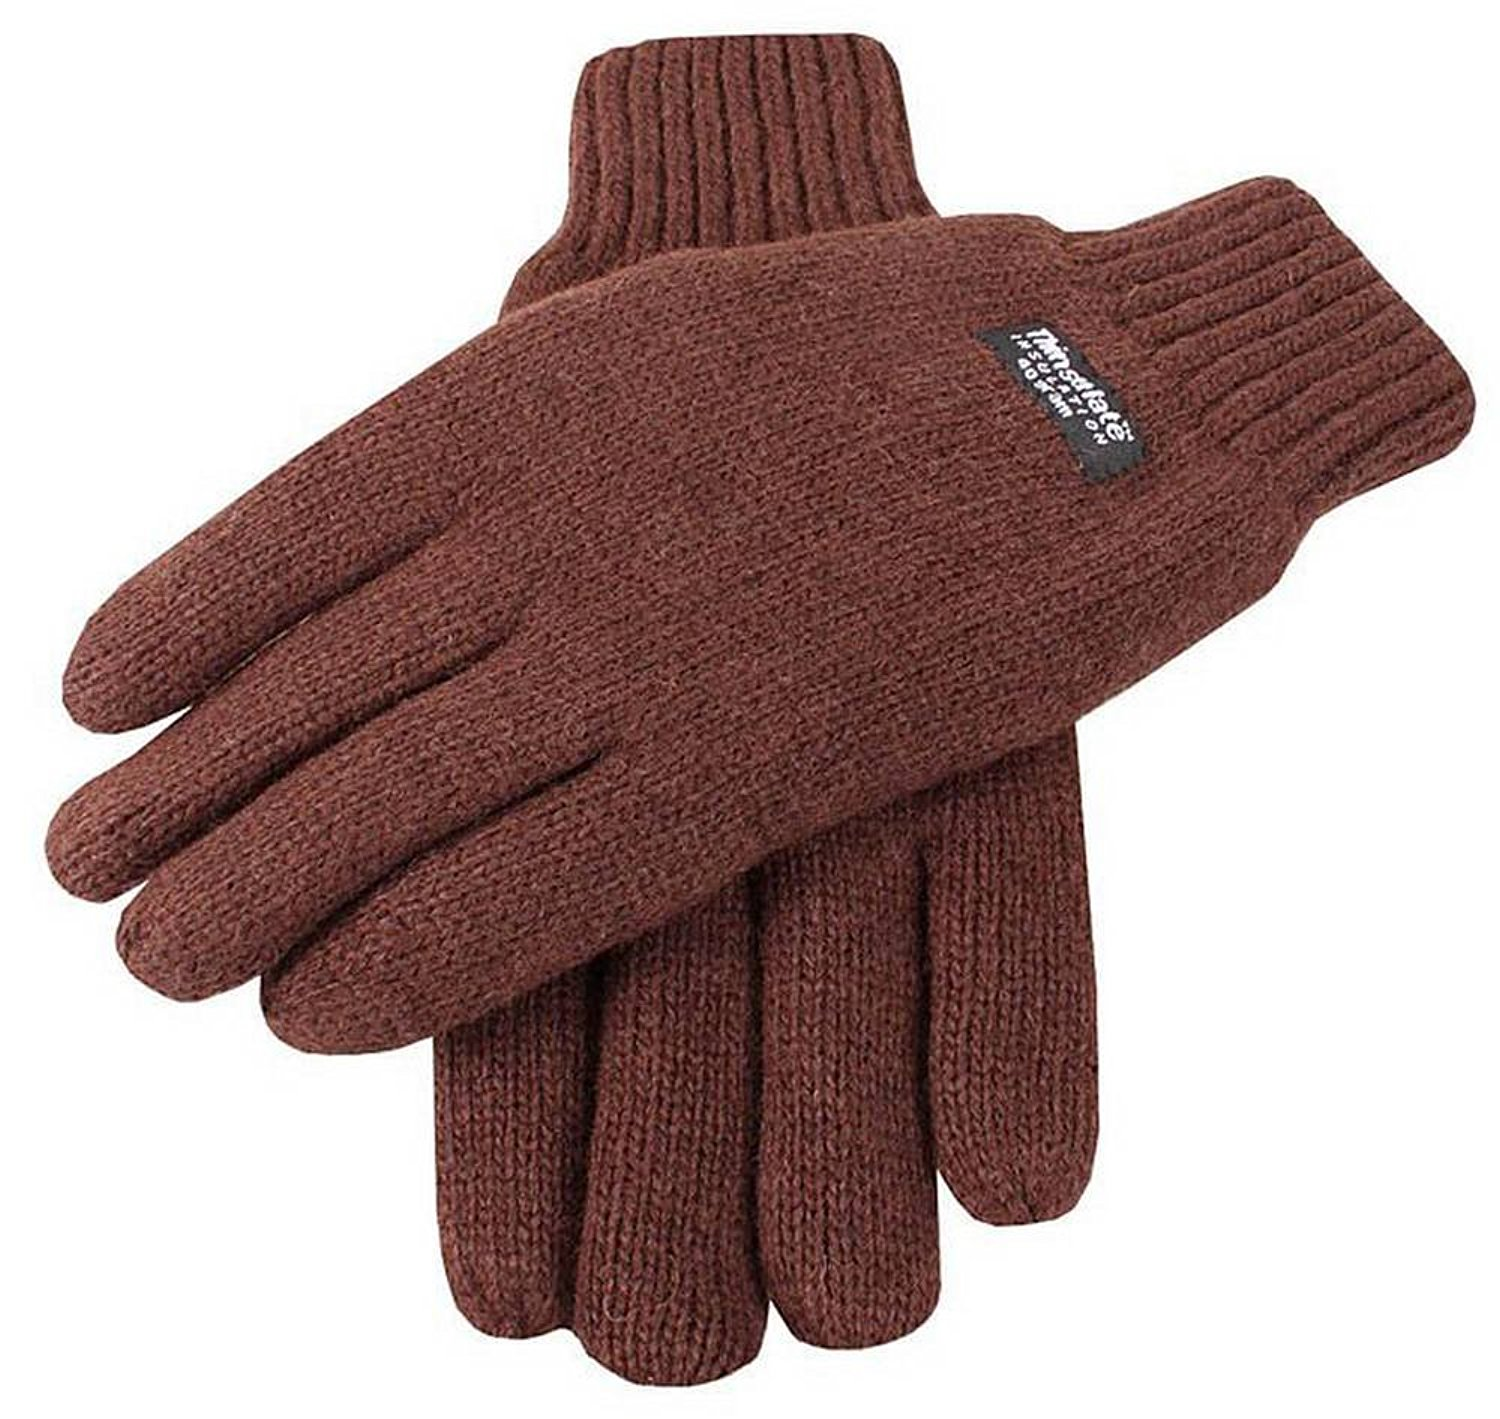 48deabf1f25 Cheap Chocolate Gloves, find Chocolate Gloves deals on line at ...